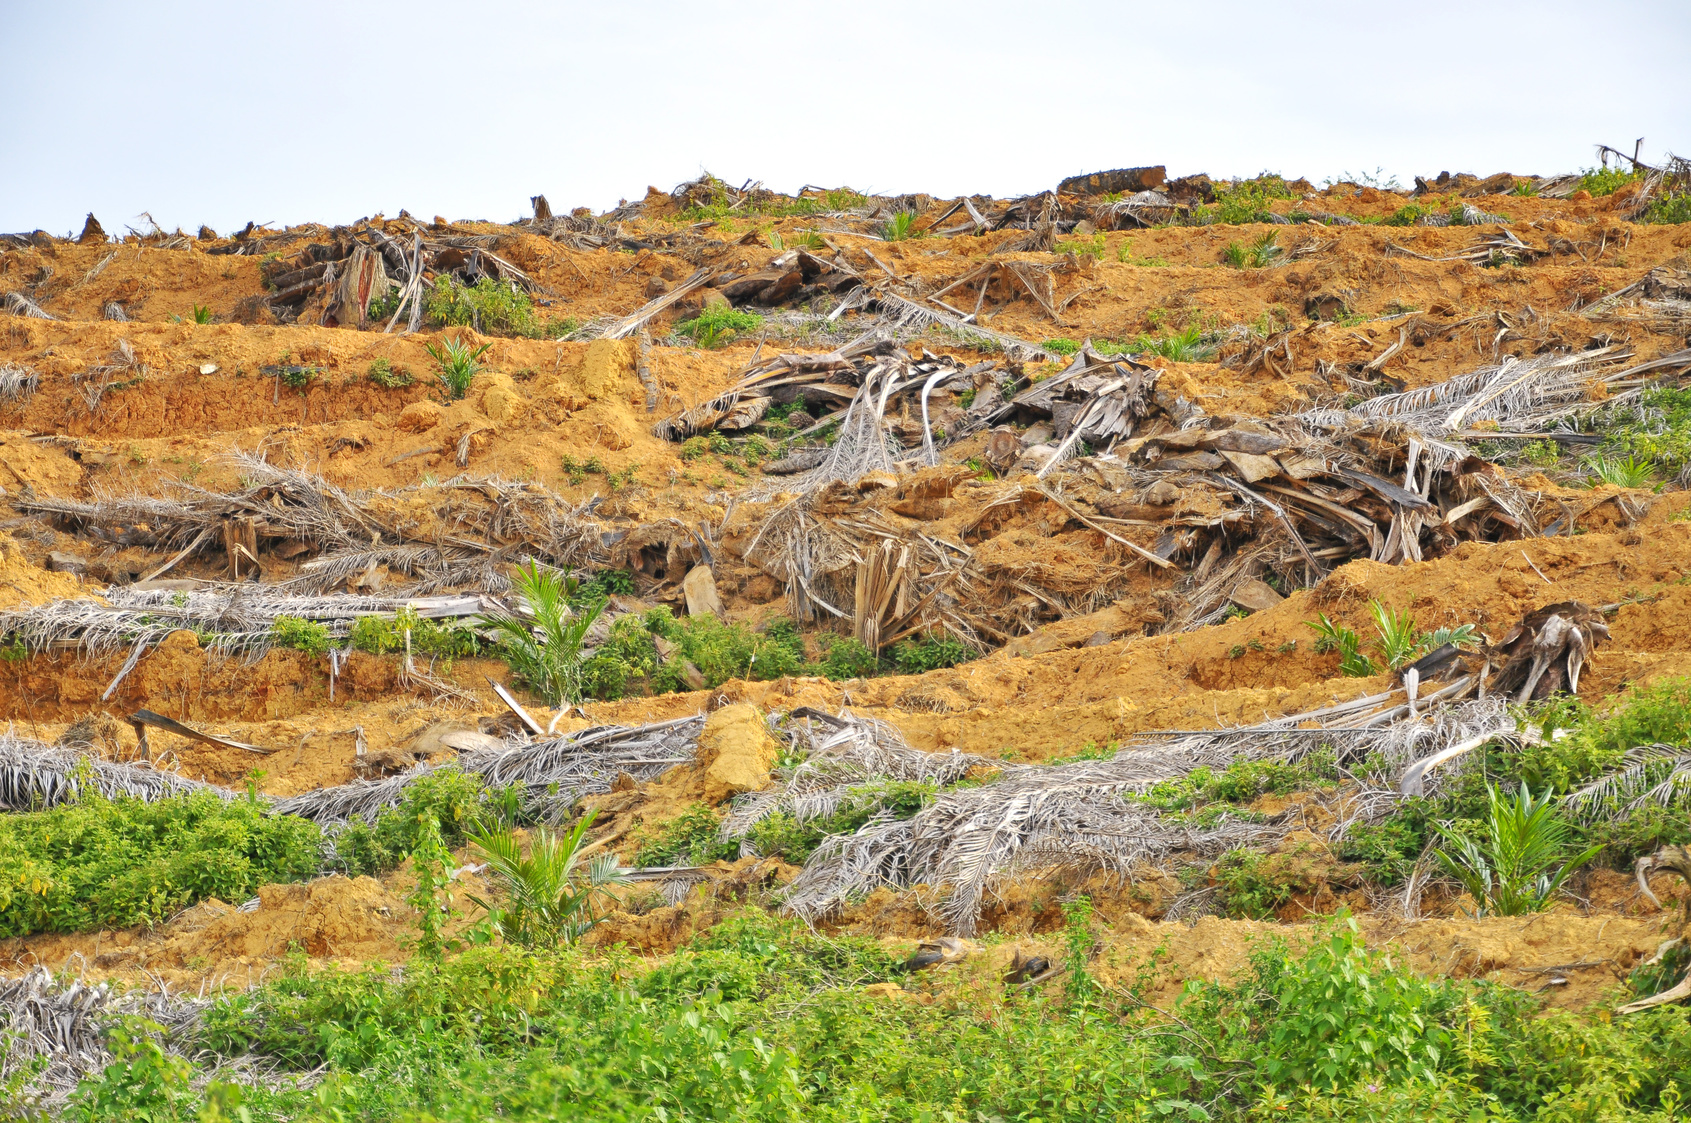 Deforestation and replanting of young oil palm tree.